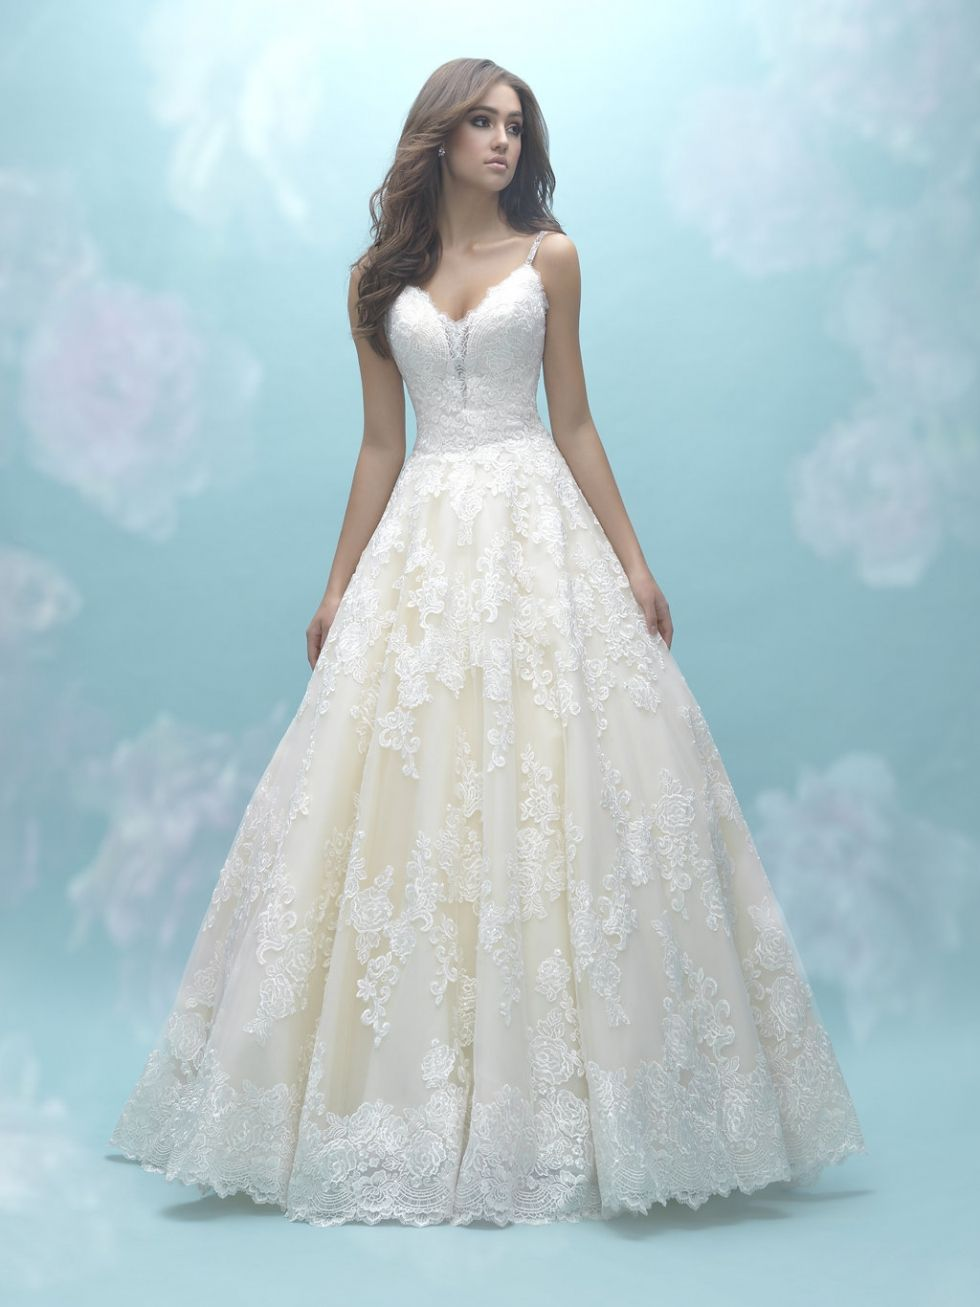 All over lace ballgown with deep v illusion neckline and spaghetti ...